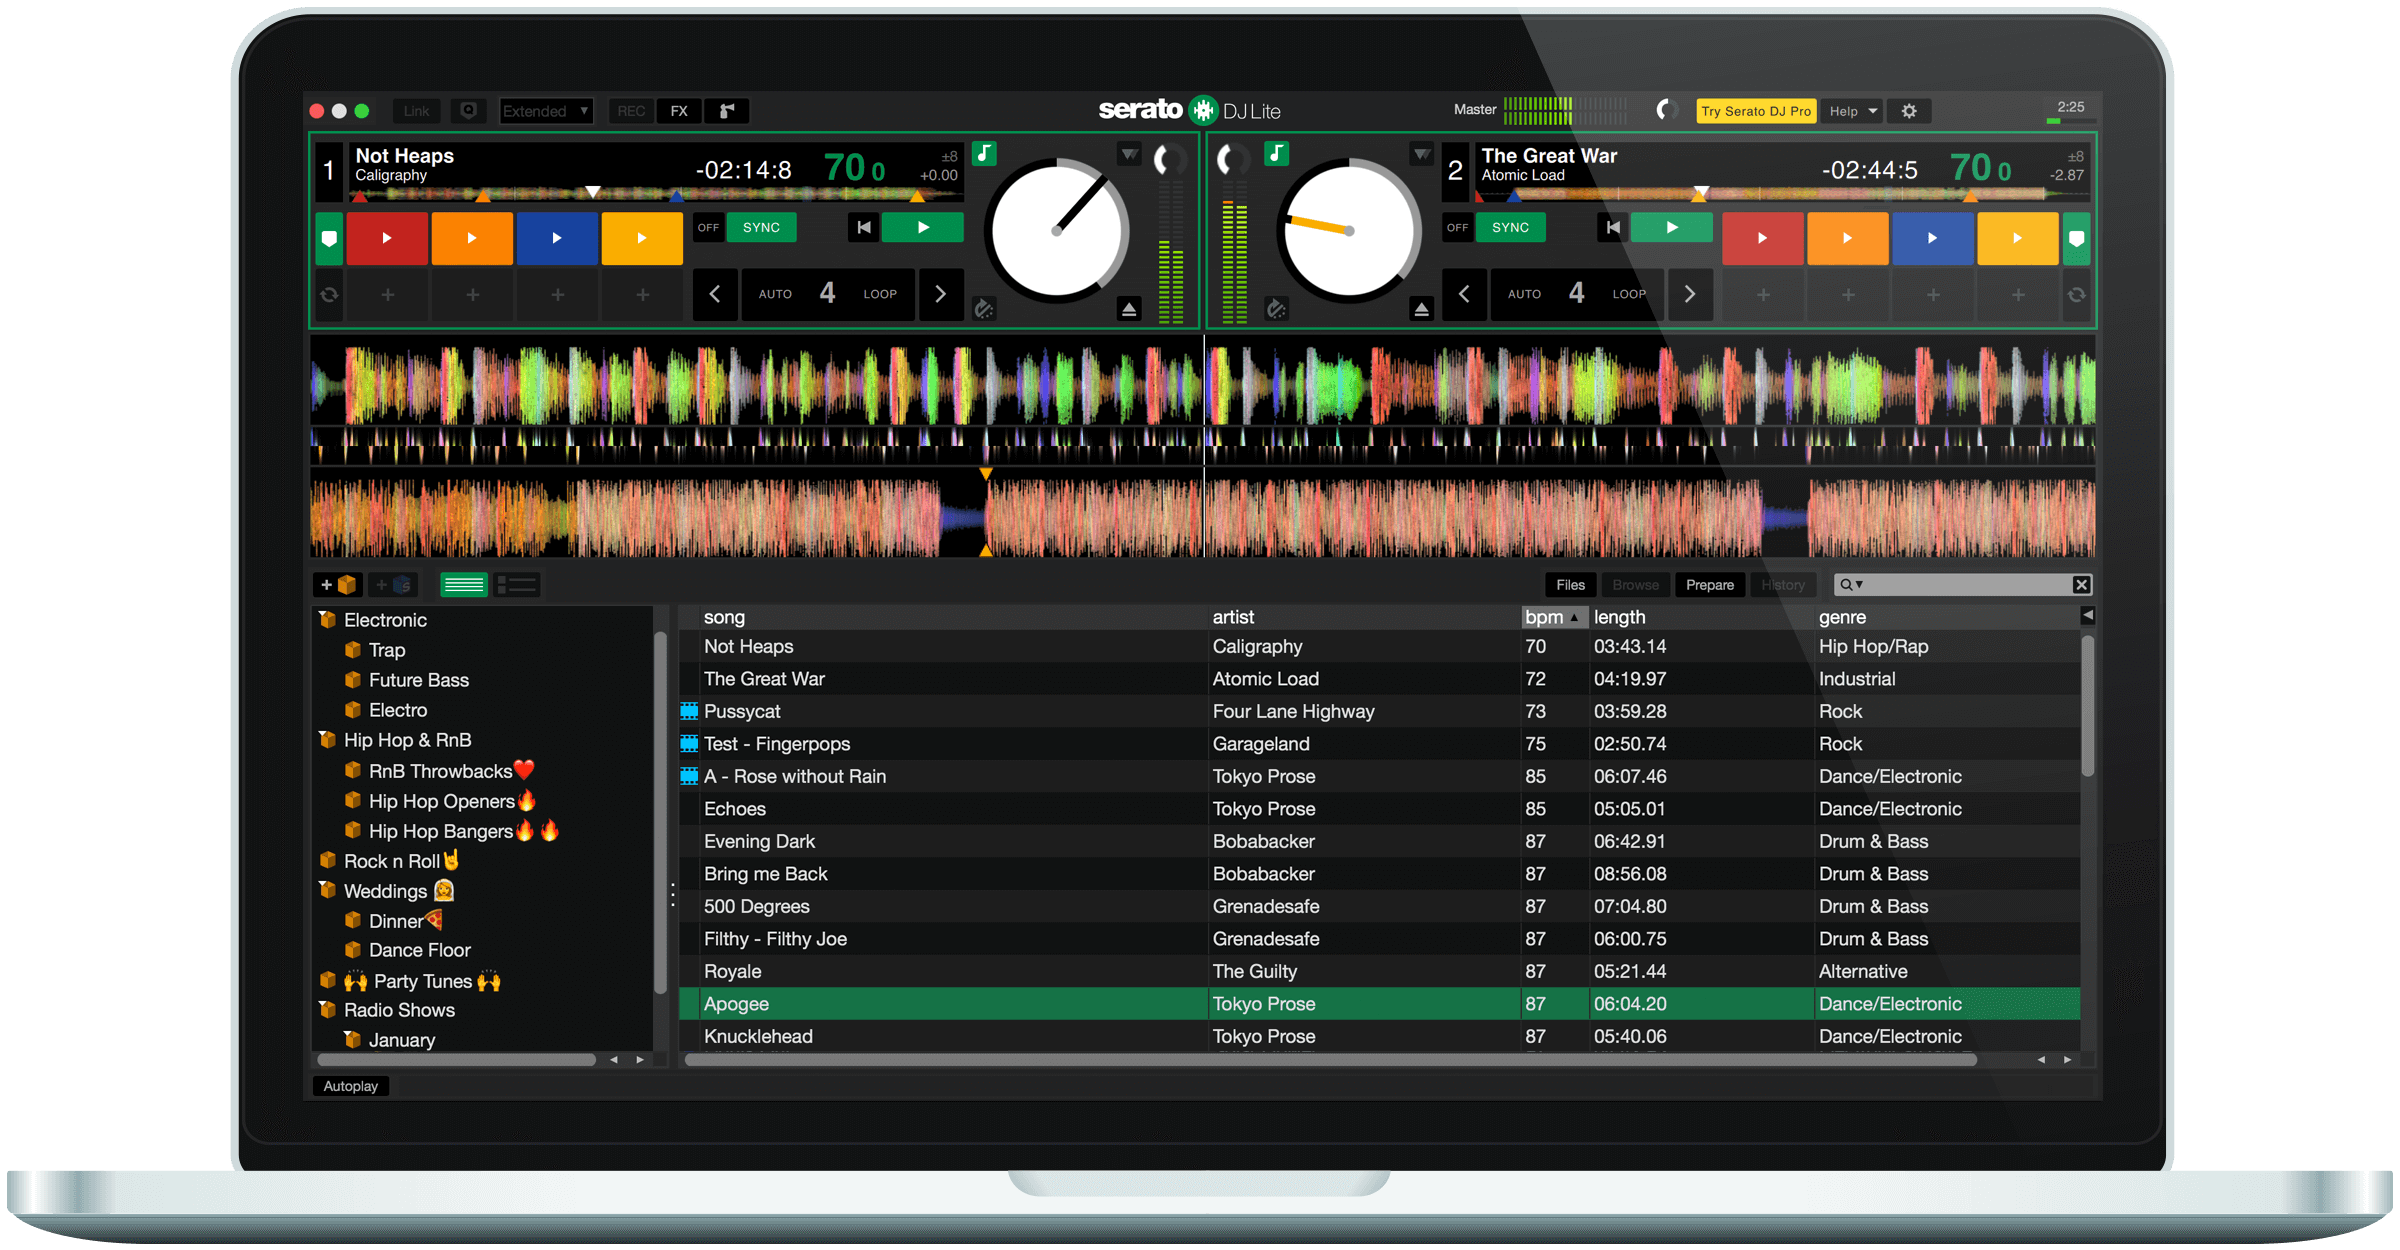 Serato DJ Lite screenshot